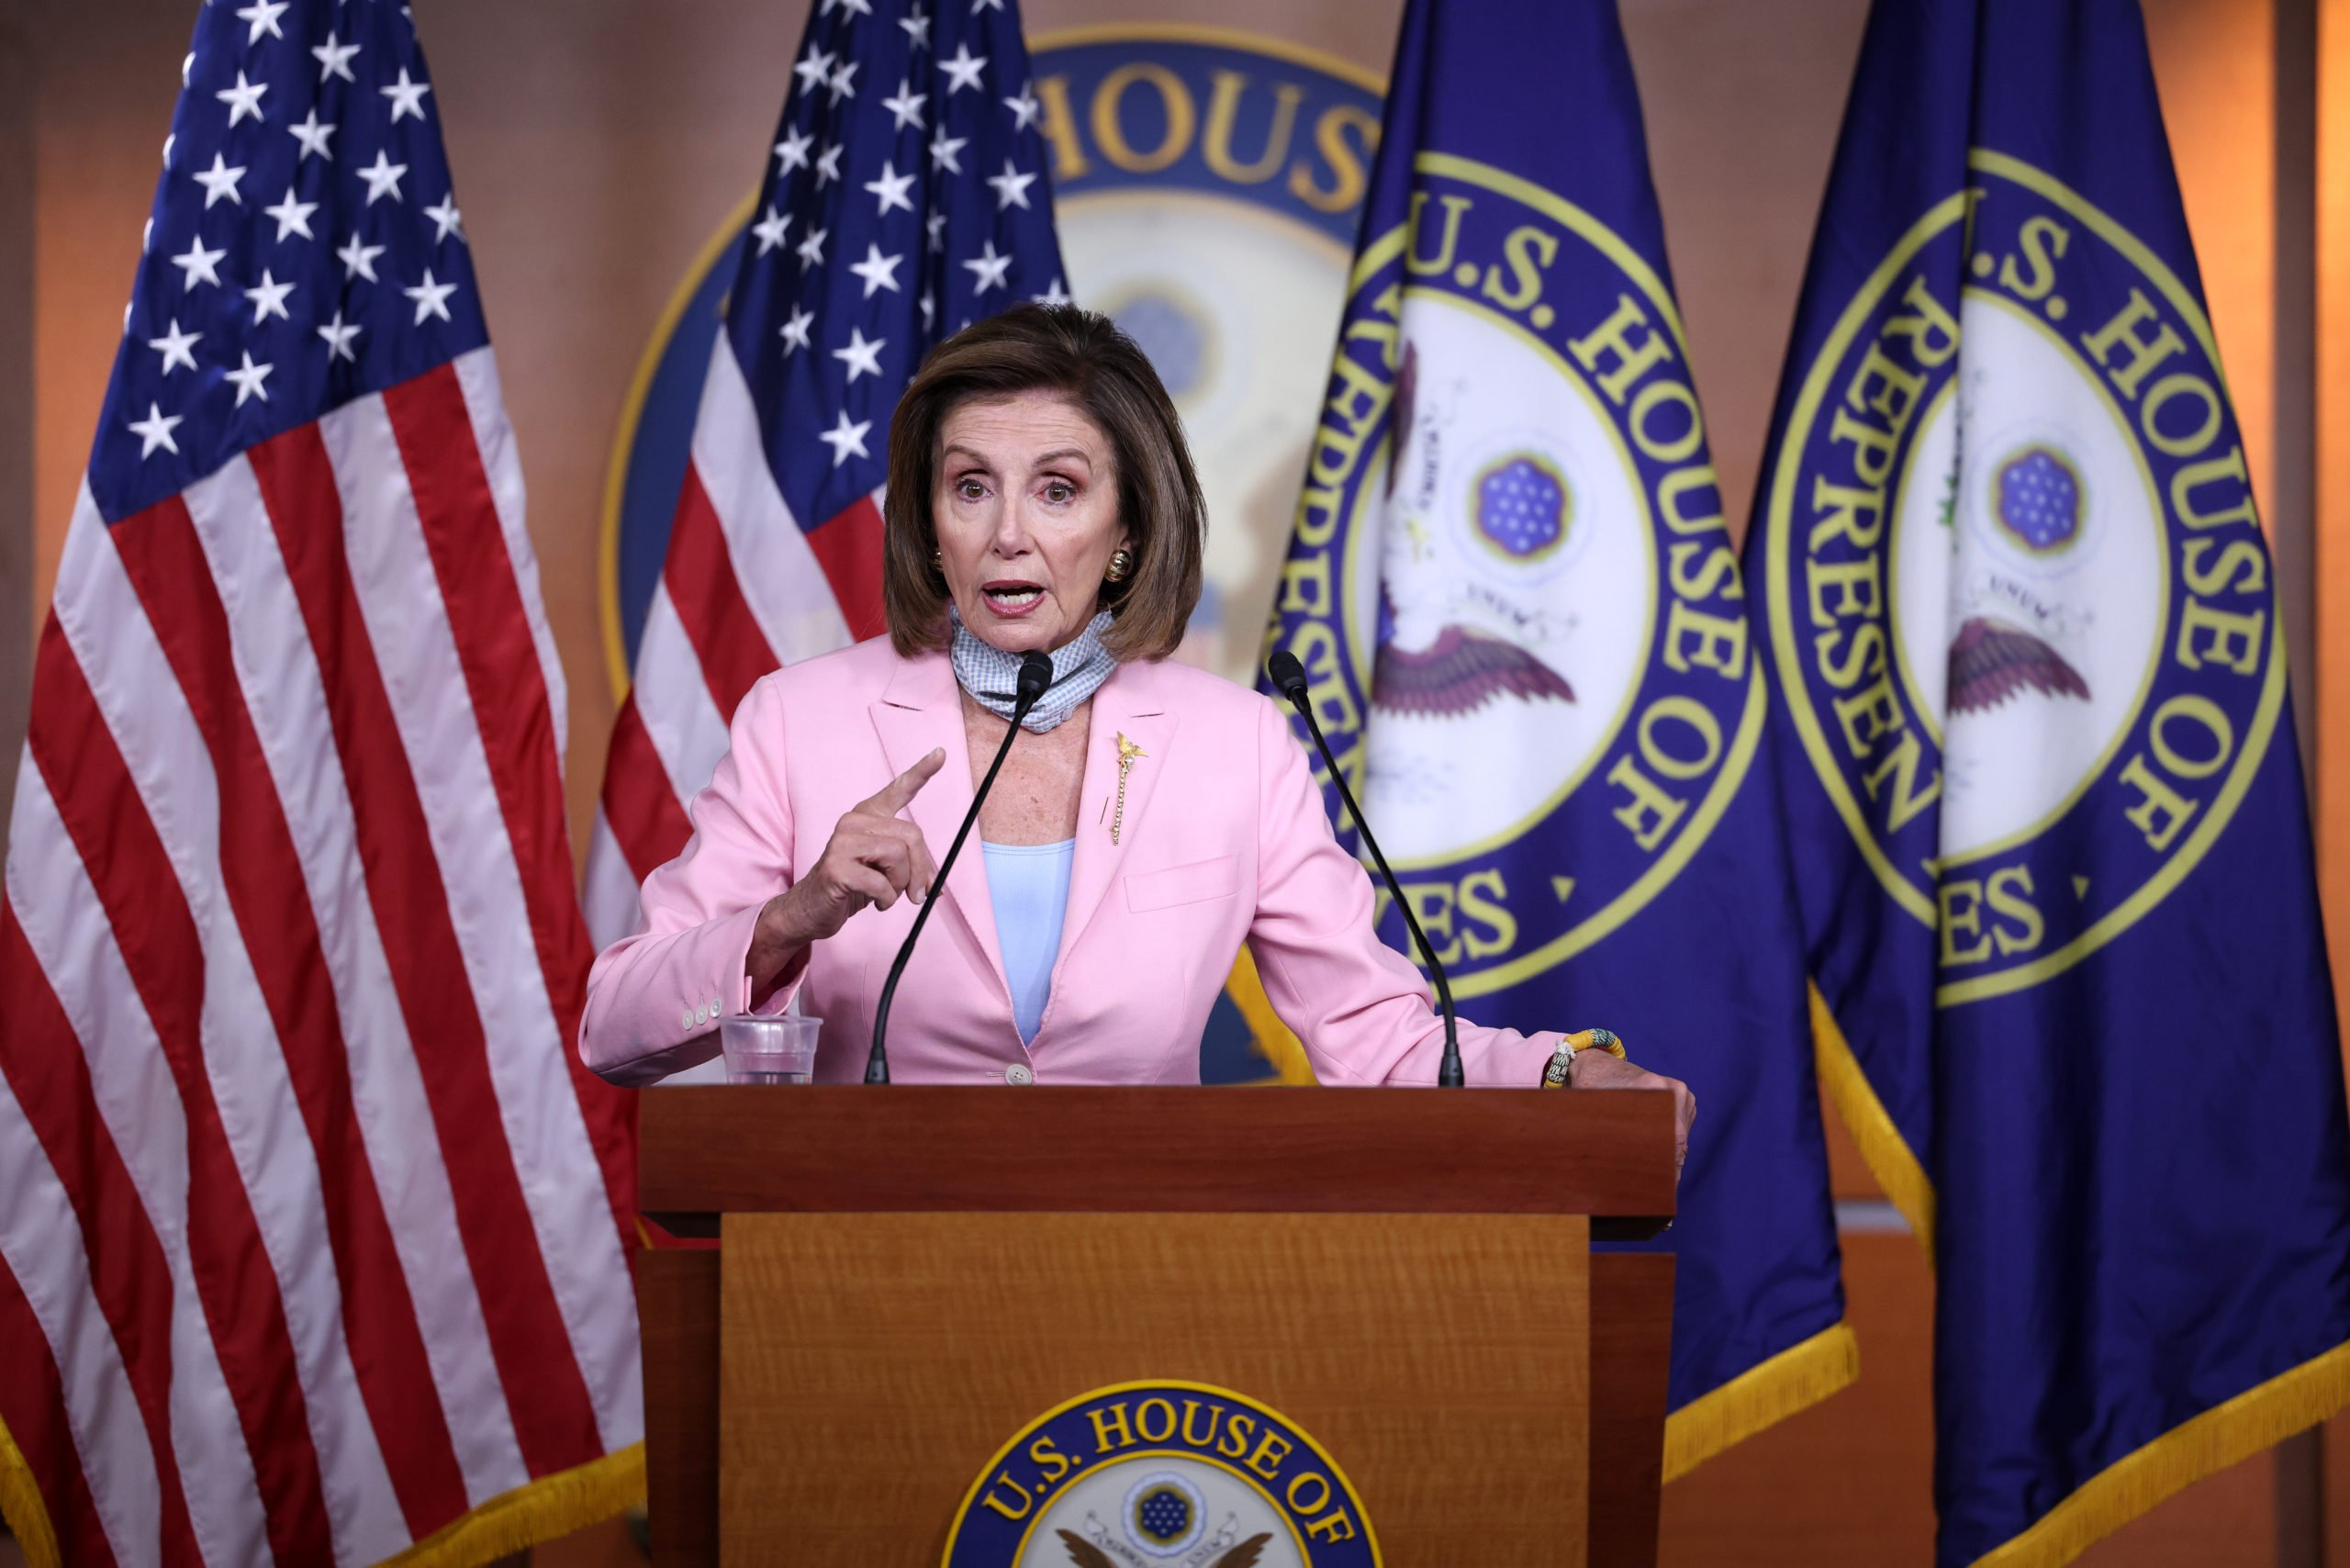 Speaker Nancy Pelosi speaks on August 25 at the Capitol after the House advanced the budget and infrastructure bill. (Kevin Dietsch/Getty Images)